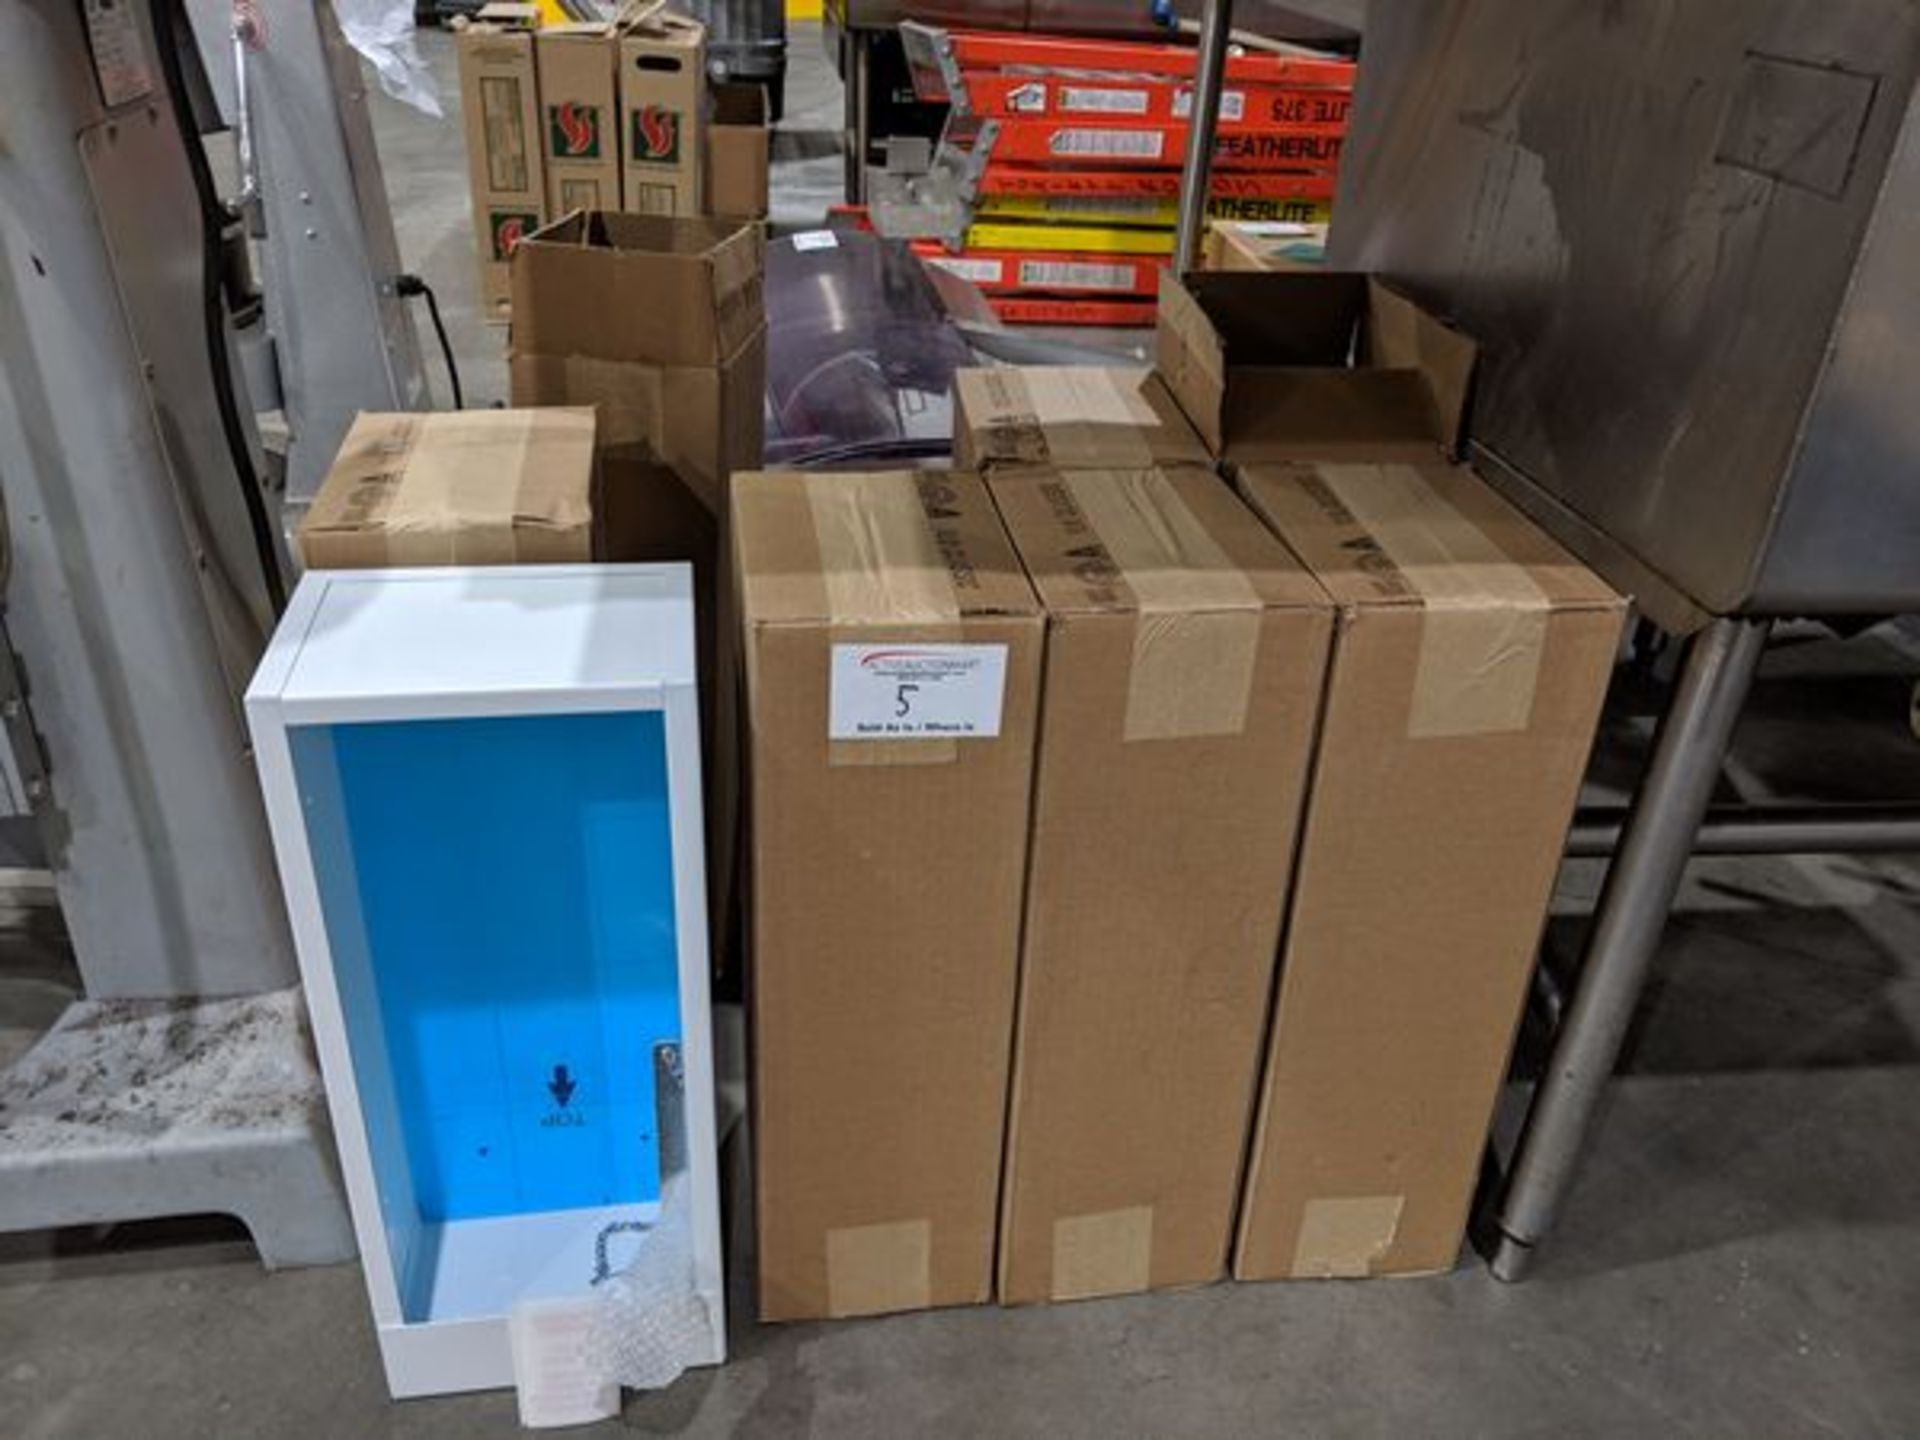 Lot 5 - 7 New Fire Extinguisher Cabinets